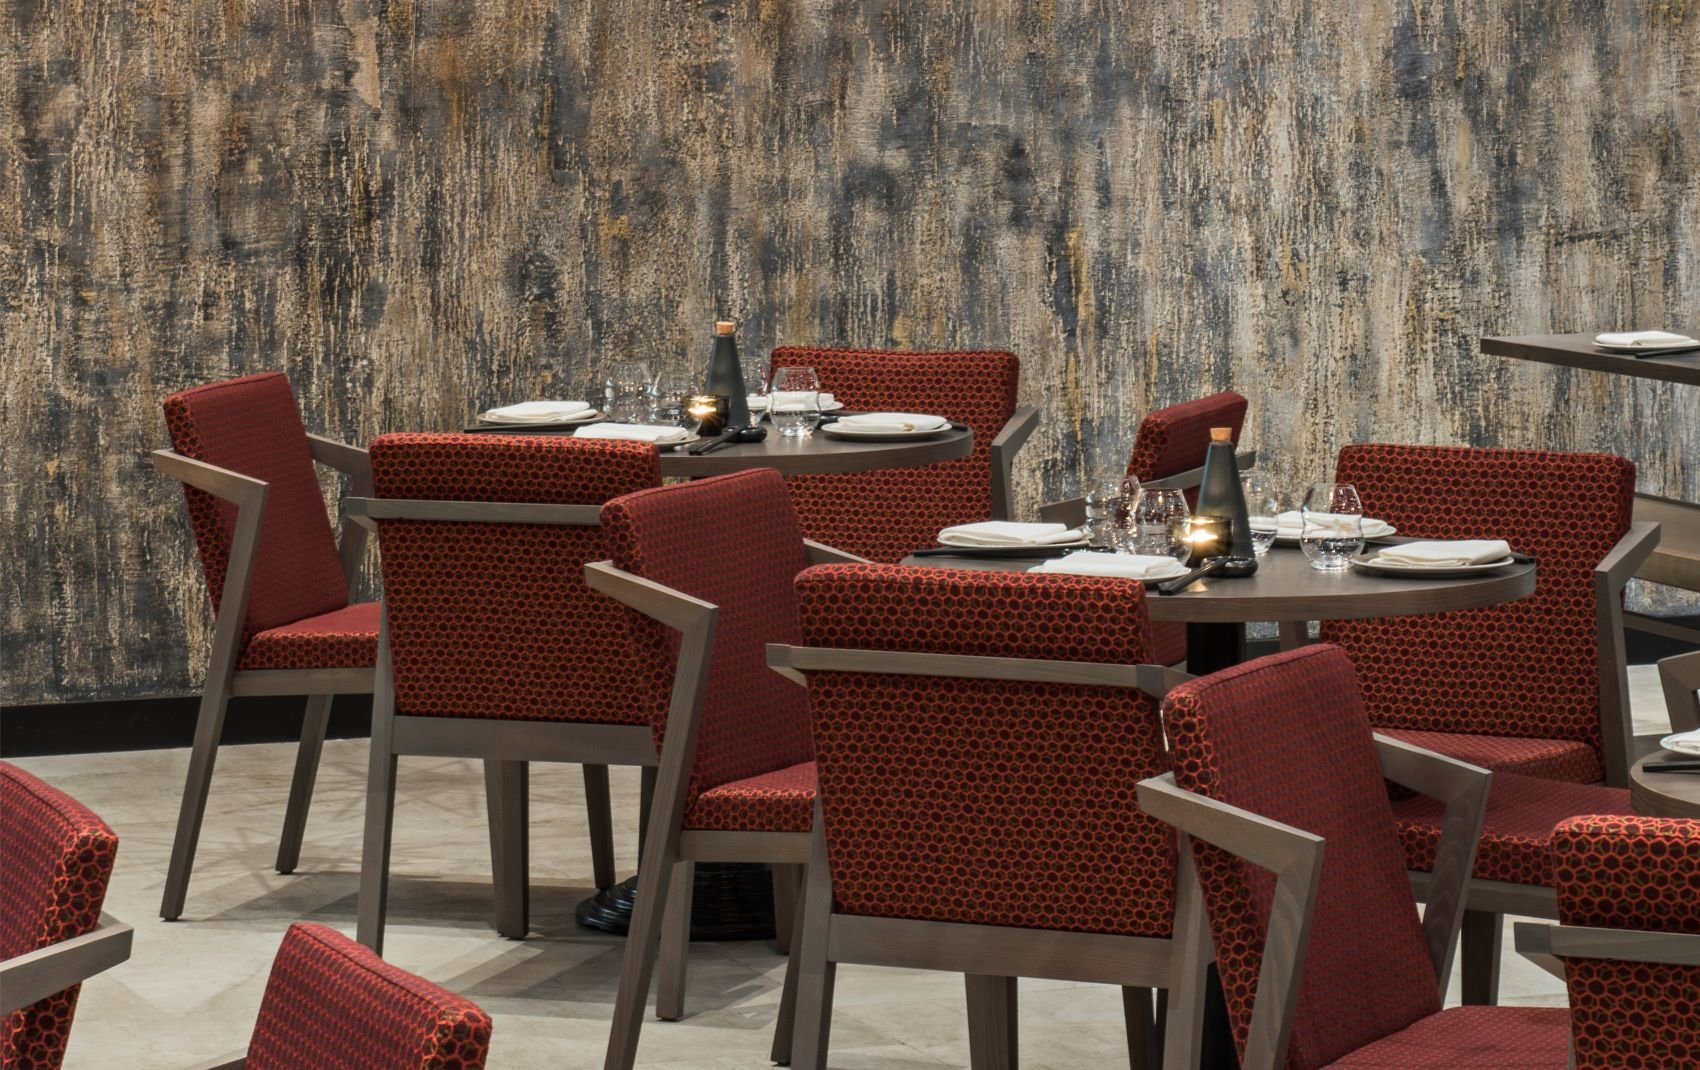 upscale restaurant luxury interior design